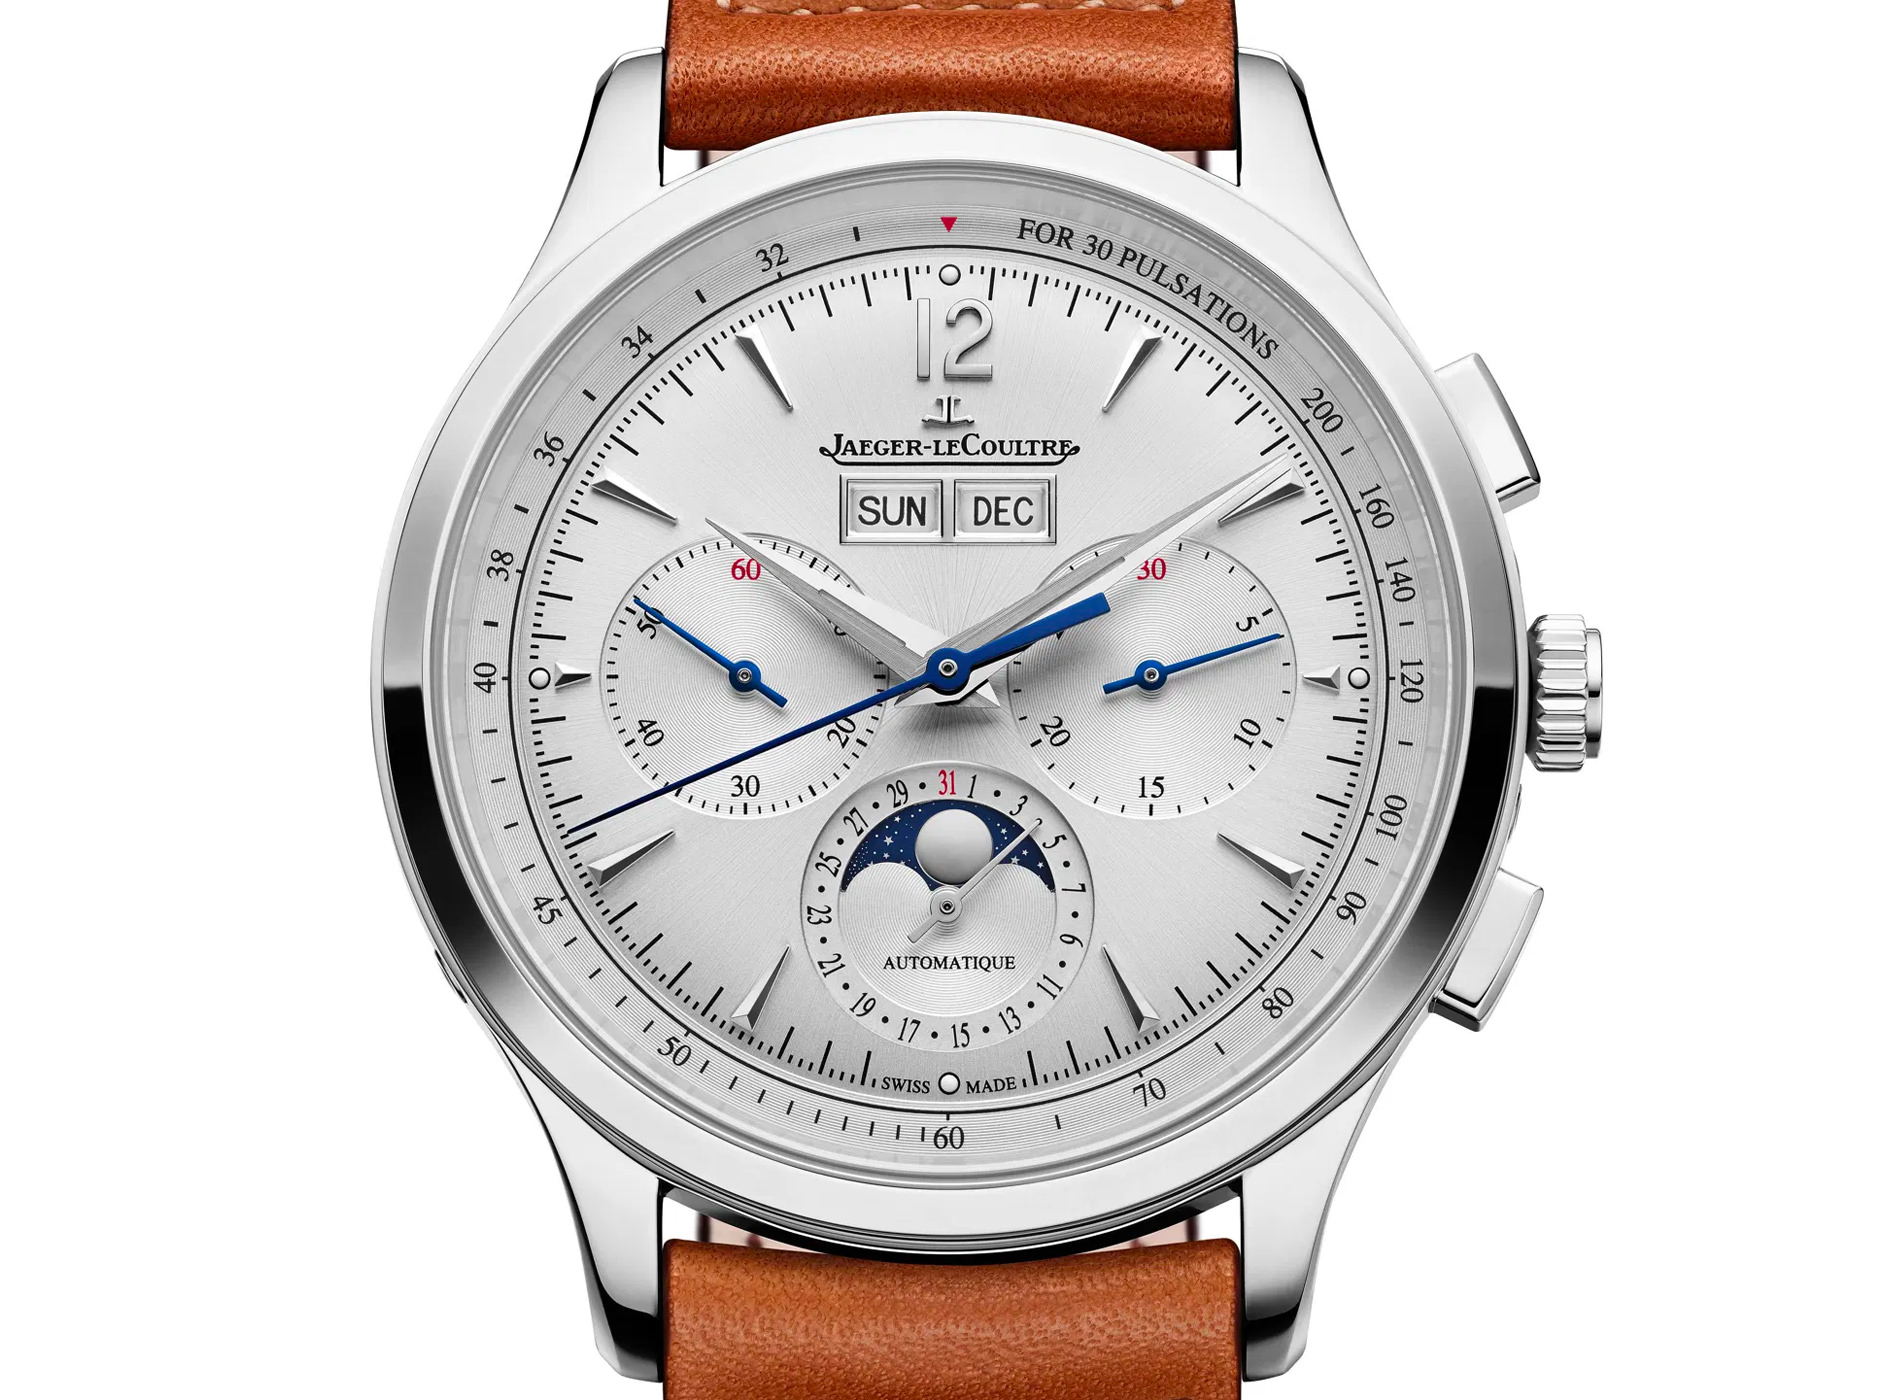 Jaeger-LeCoultre-Master-Control-Chronograph-Calendar-CloseUp-New-Collection